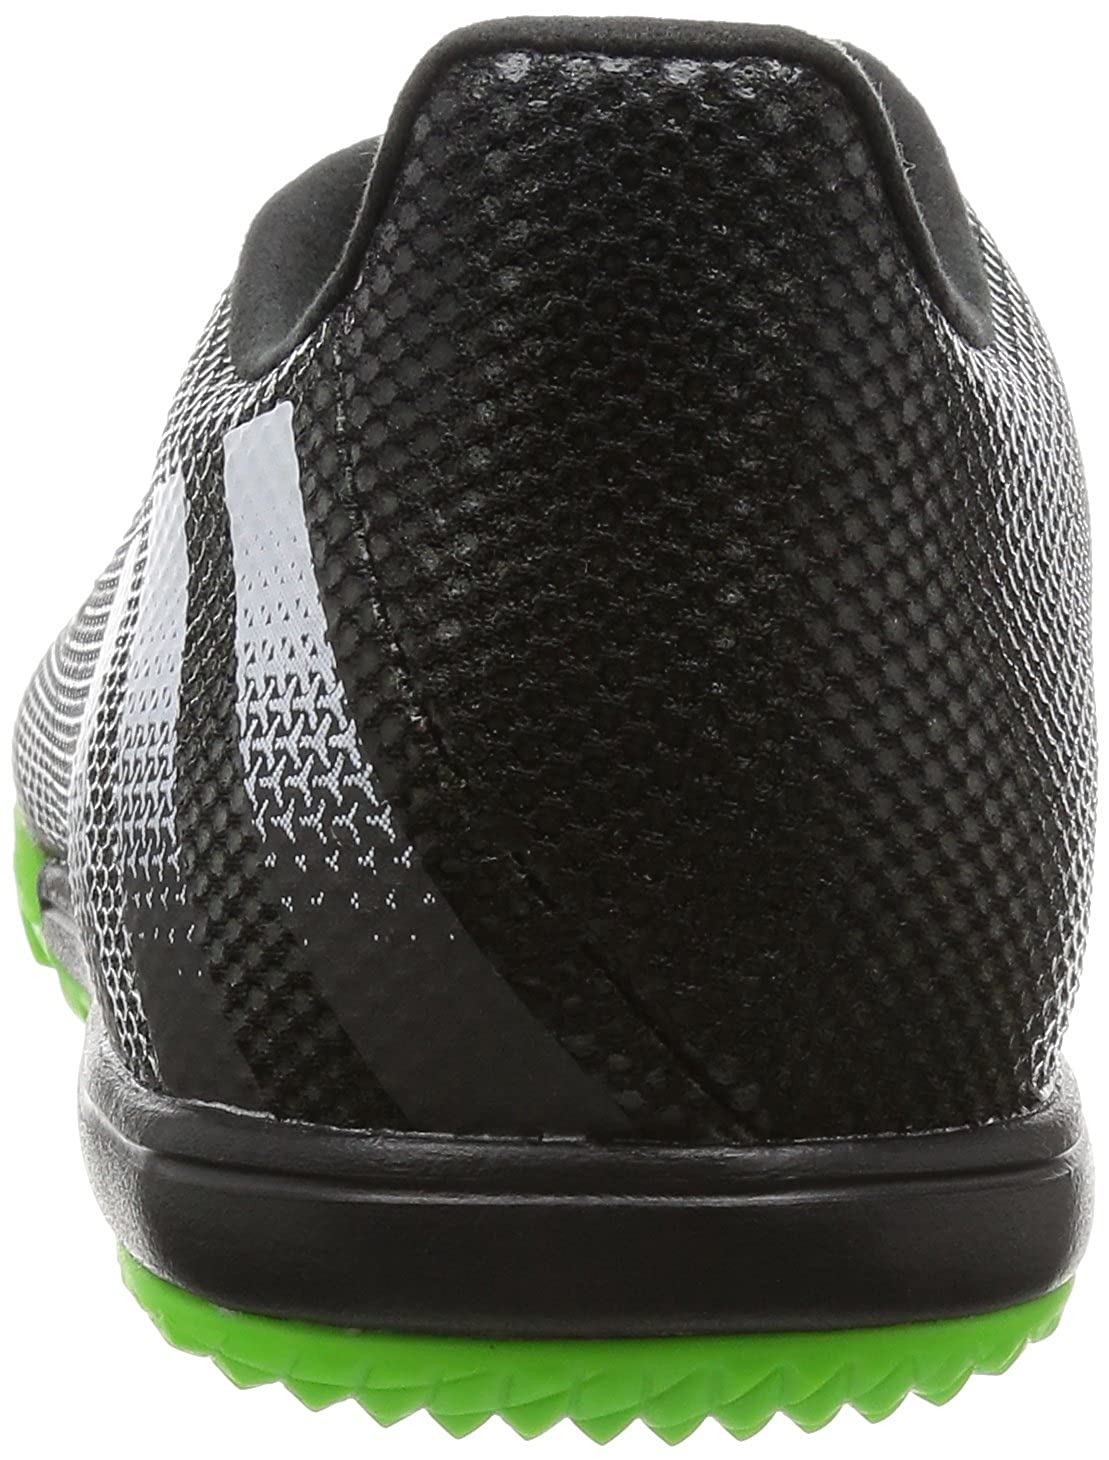 b9ddf625f699 adidas Men's Ace 16.1 Cage Football Boots: Amazon.co.uk: Shoes & Bags